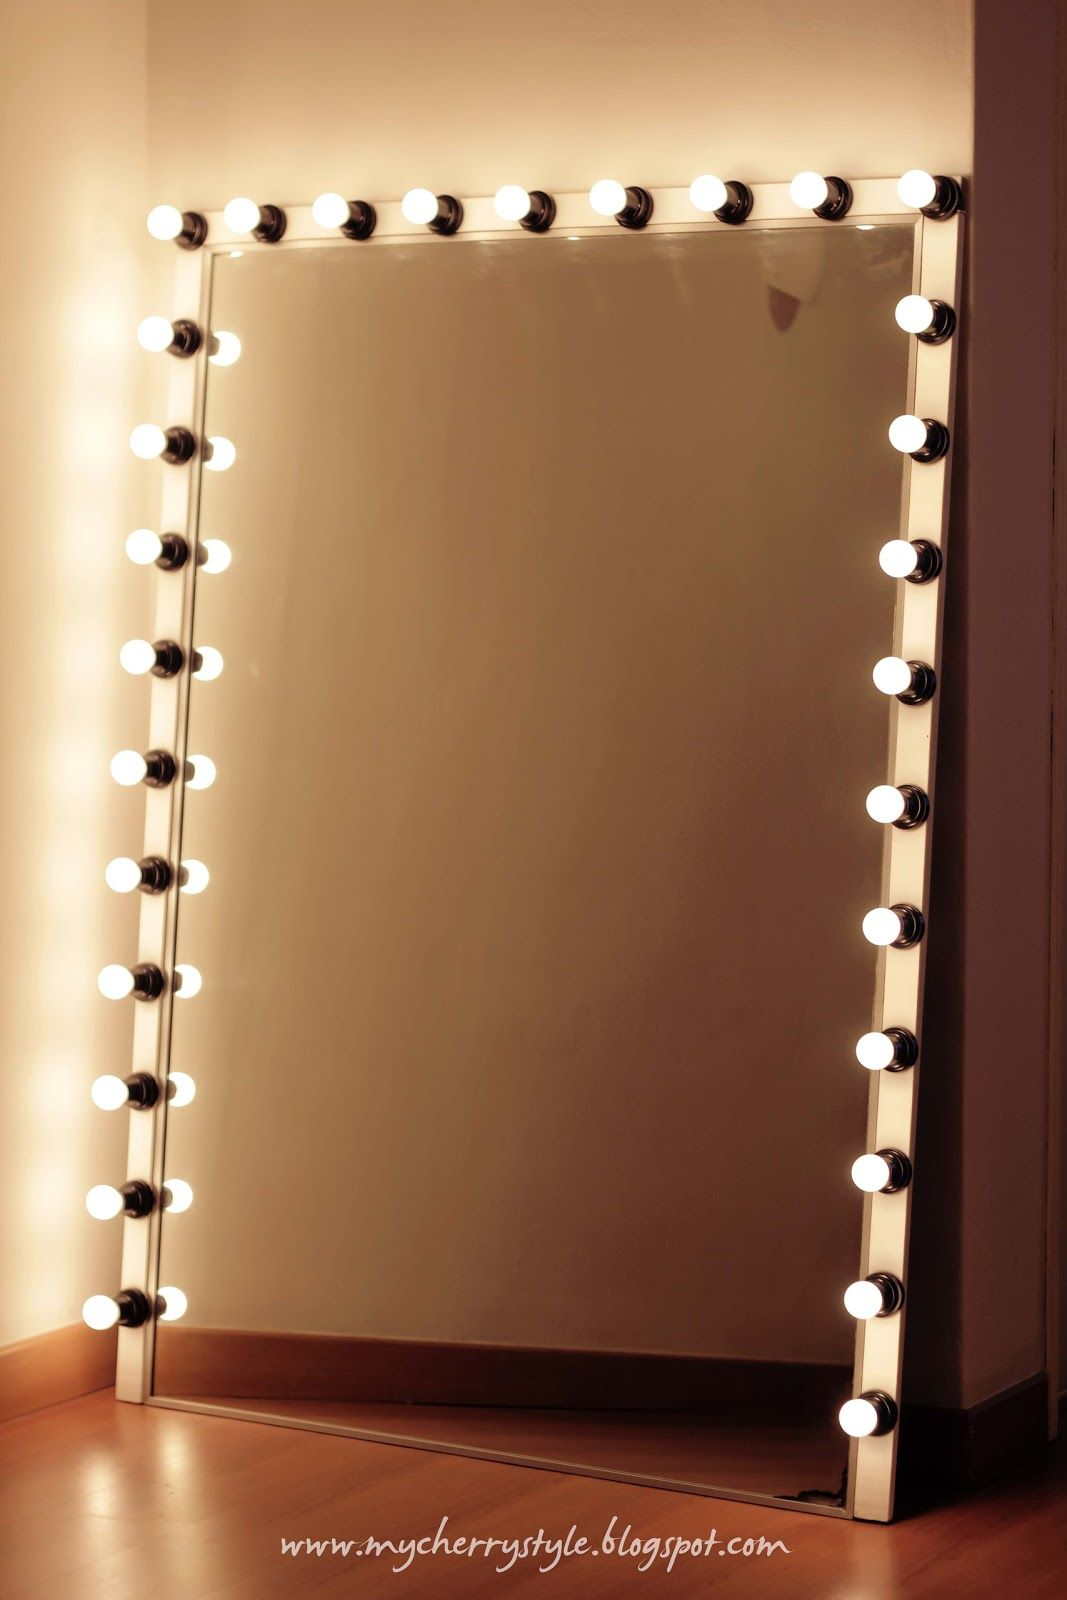 diy hollywood vanity mirror with lights. My Cherry Style  DIY Hollywood Mirror With Lights Tutorial From Scratch For Real 17 Vanity Mirror Ideas To Make Your Room More Beautiful